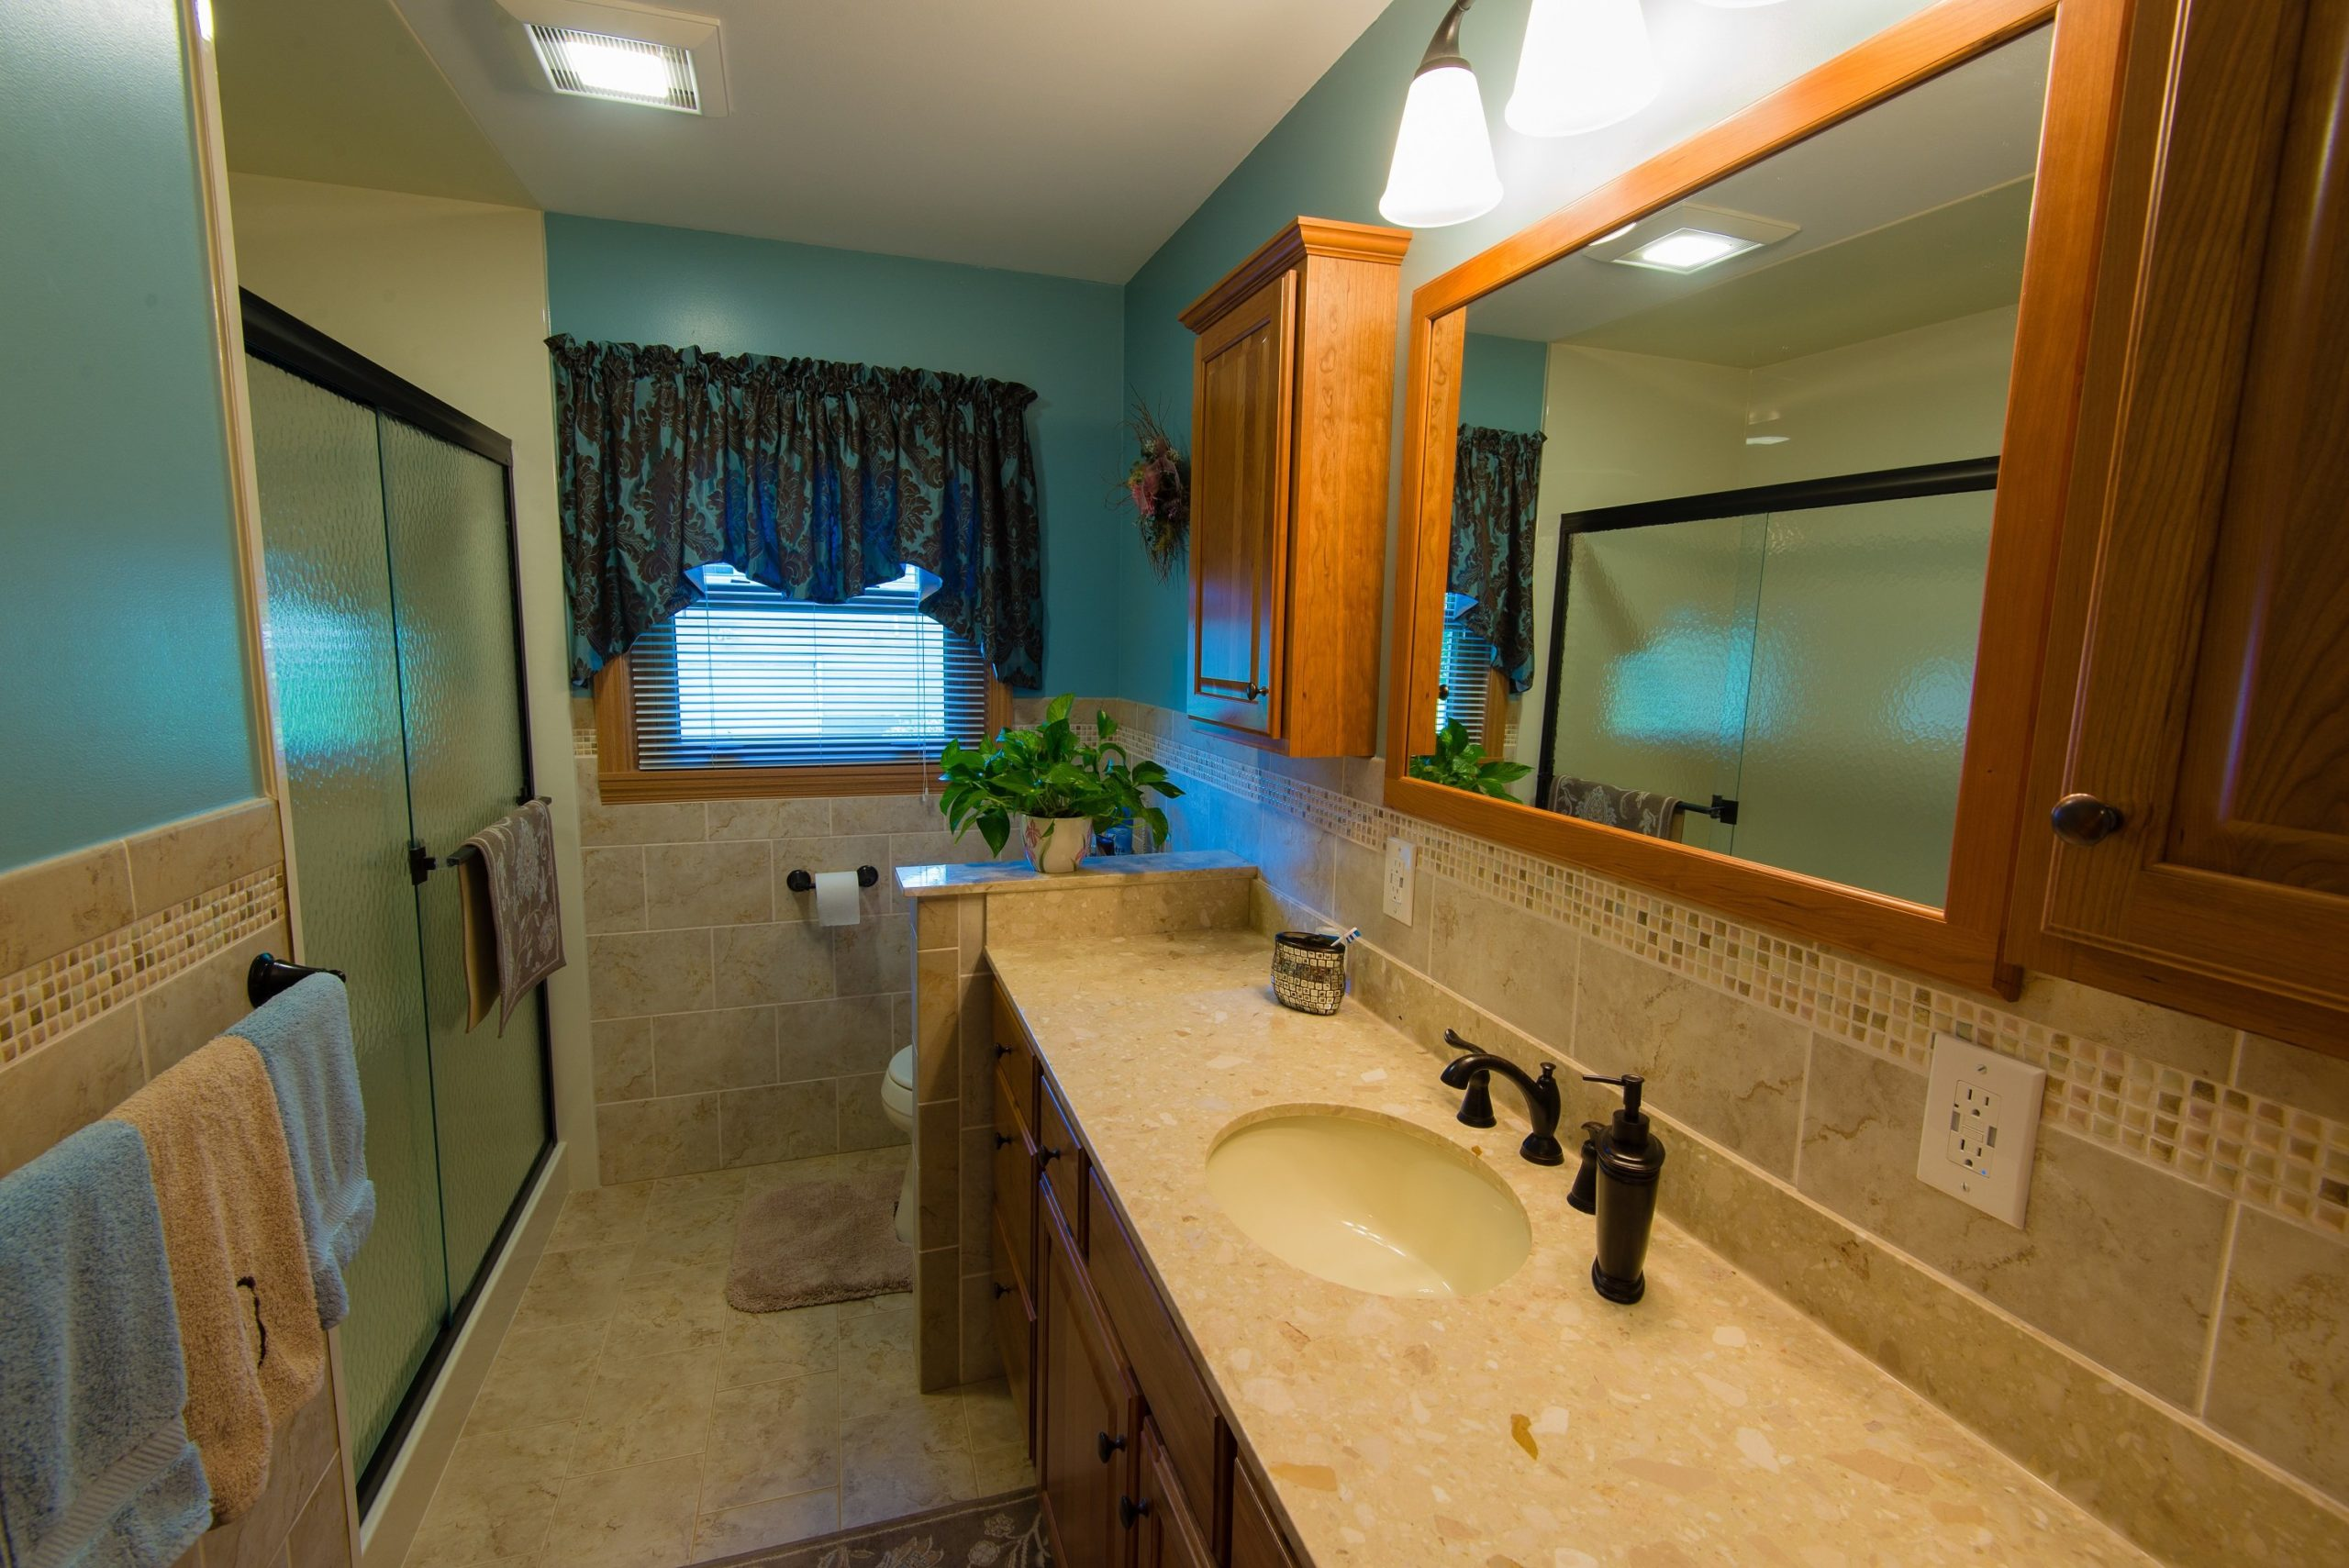 Typical Bathroom Remodel Cost Uk update the bathrooms in your utica, ny home | new york sash